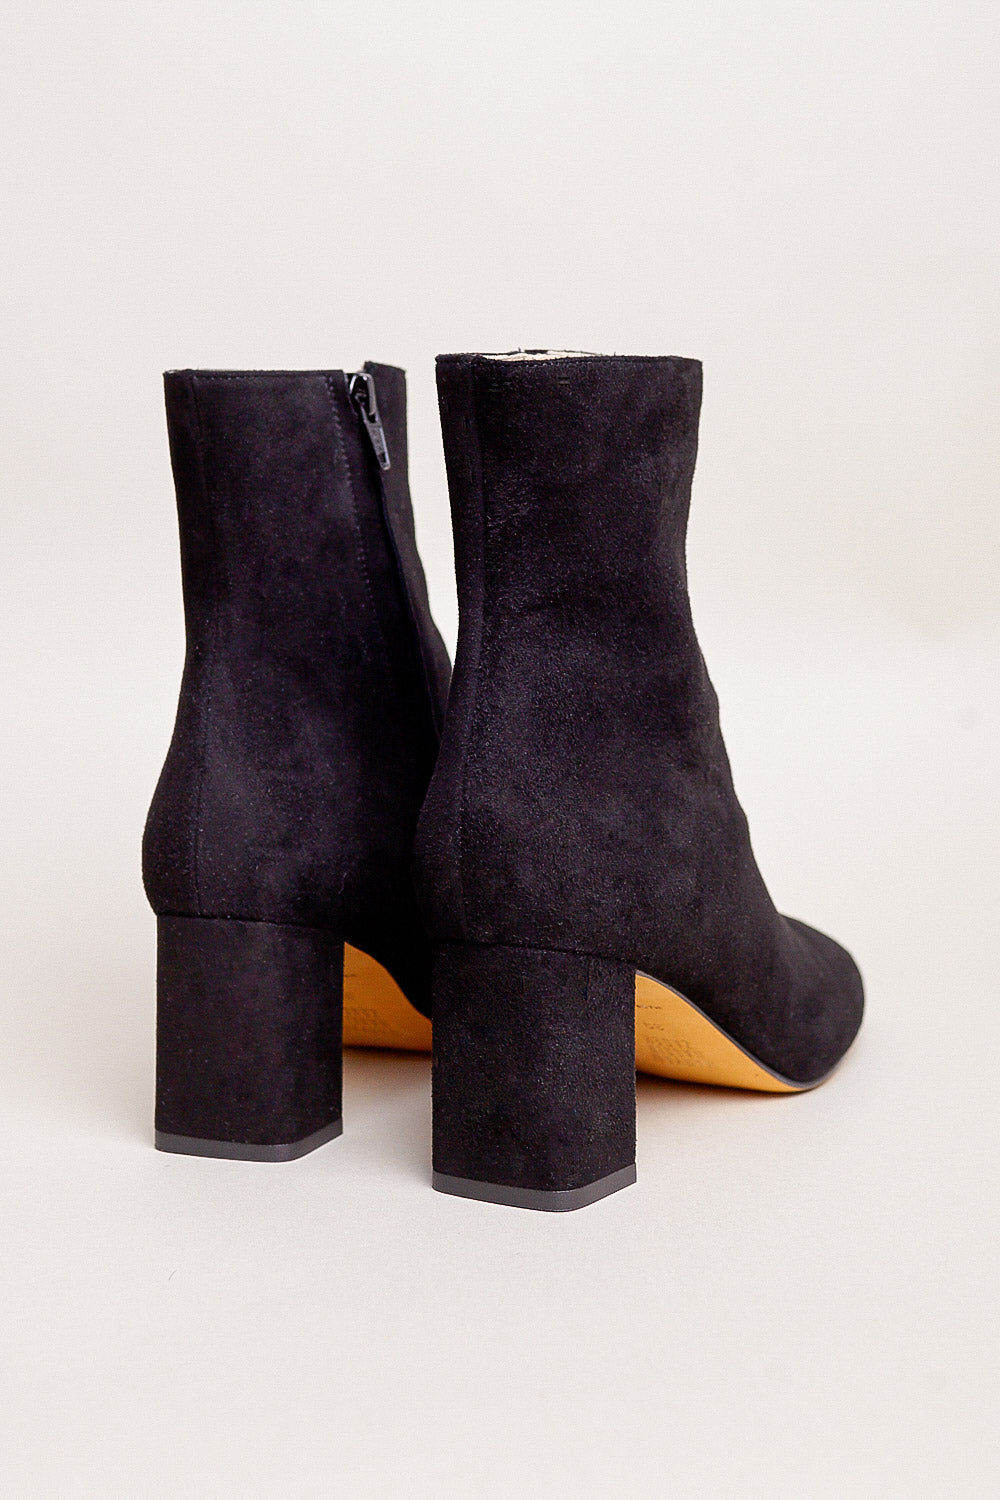 Maryam Nassir Zadeh Agnes Boot in Black - Vert & Vogue